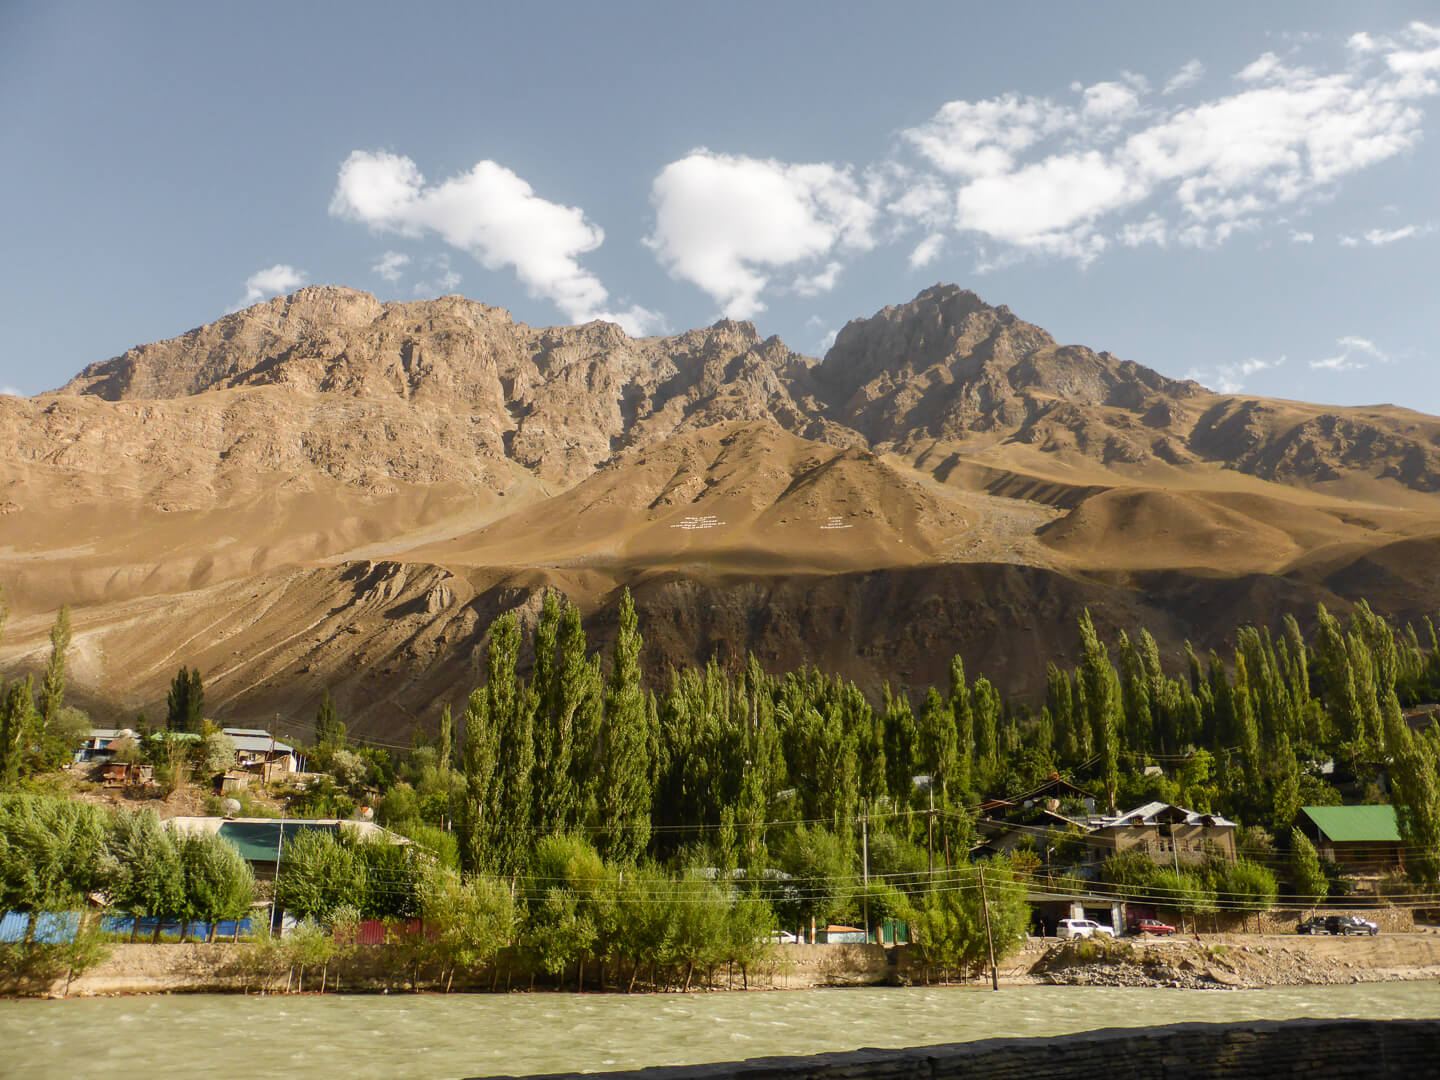 Khorog city view with Pamir mountains